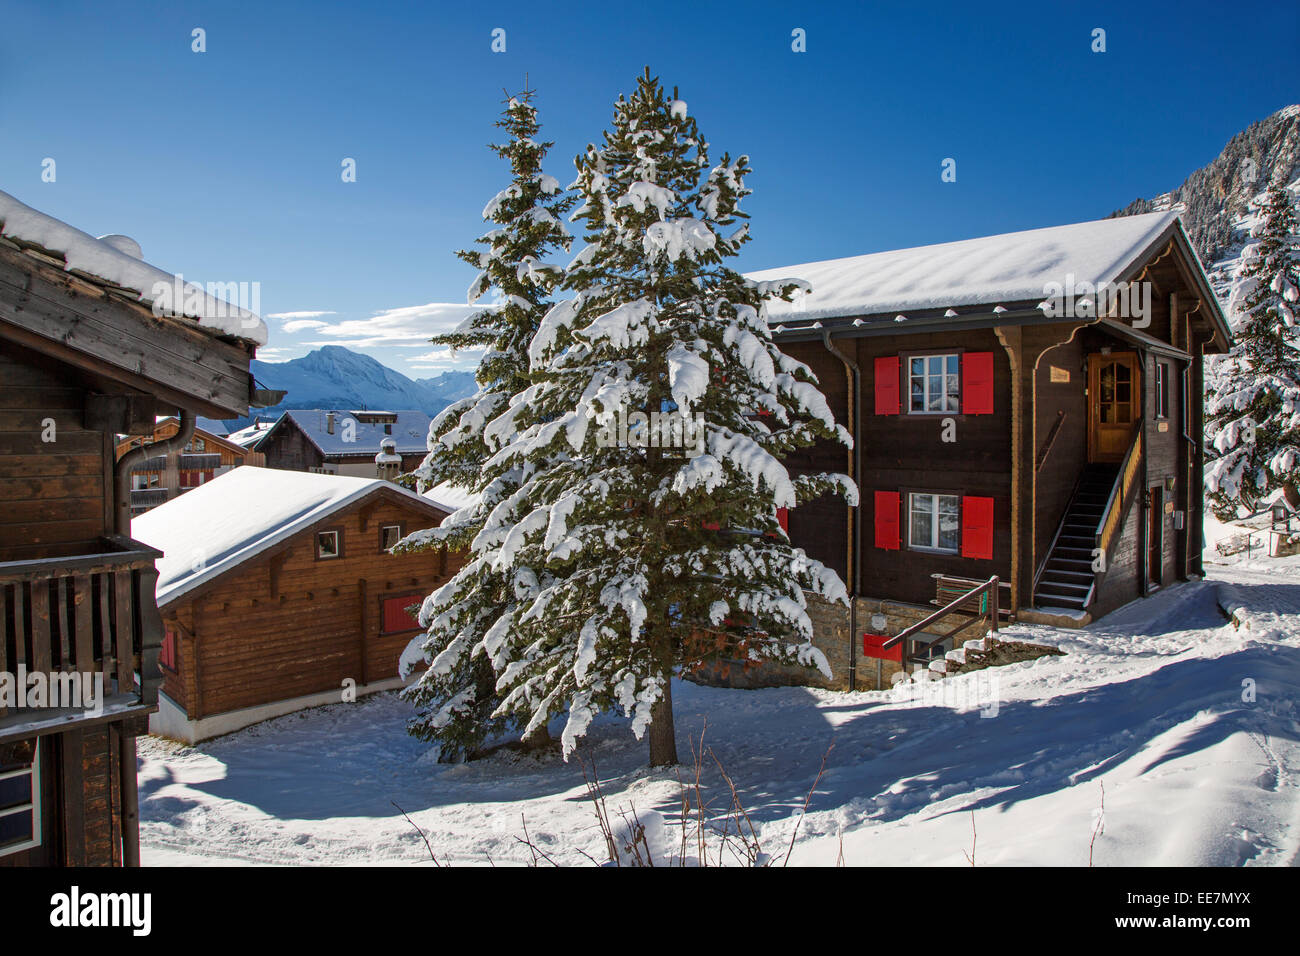 Swiss wooden chalets in the snow in winter in the Alps, Wallis / Valais, Switzerland - Stock Image